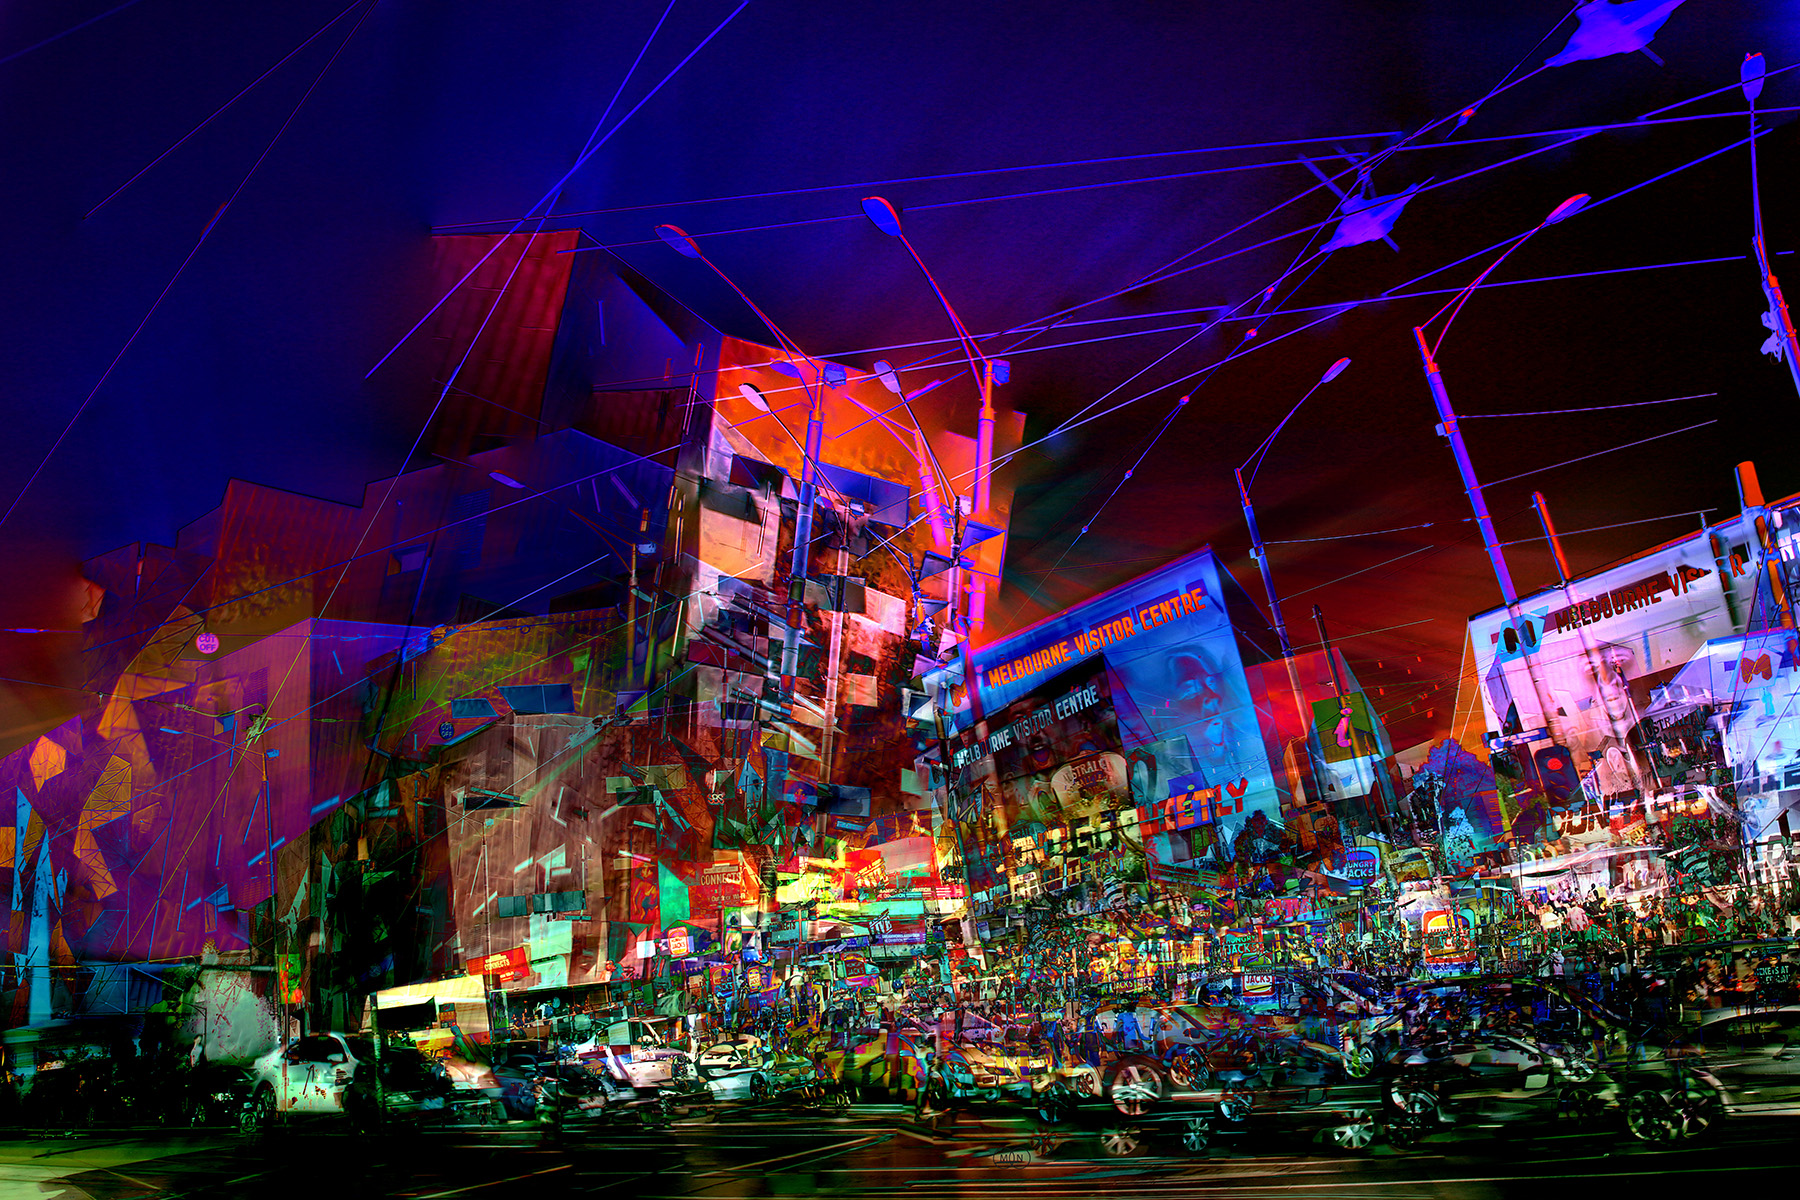 Fed Square - Night - Urb22